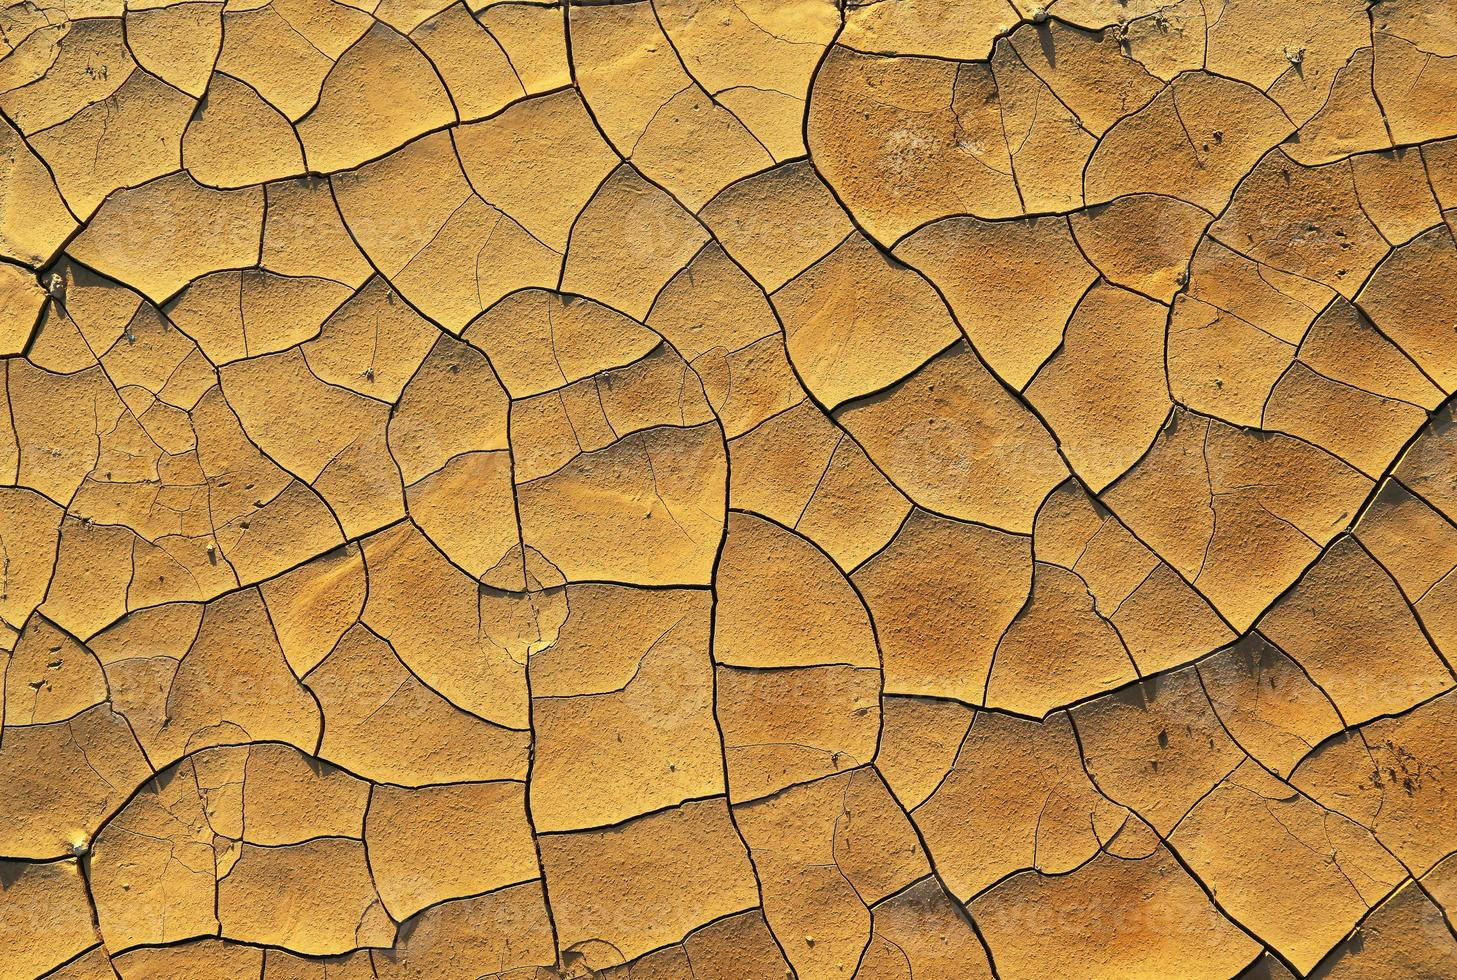 Dry cracked earth photo